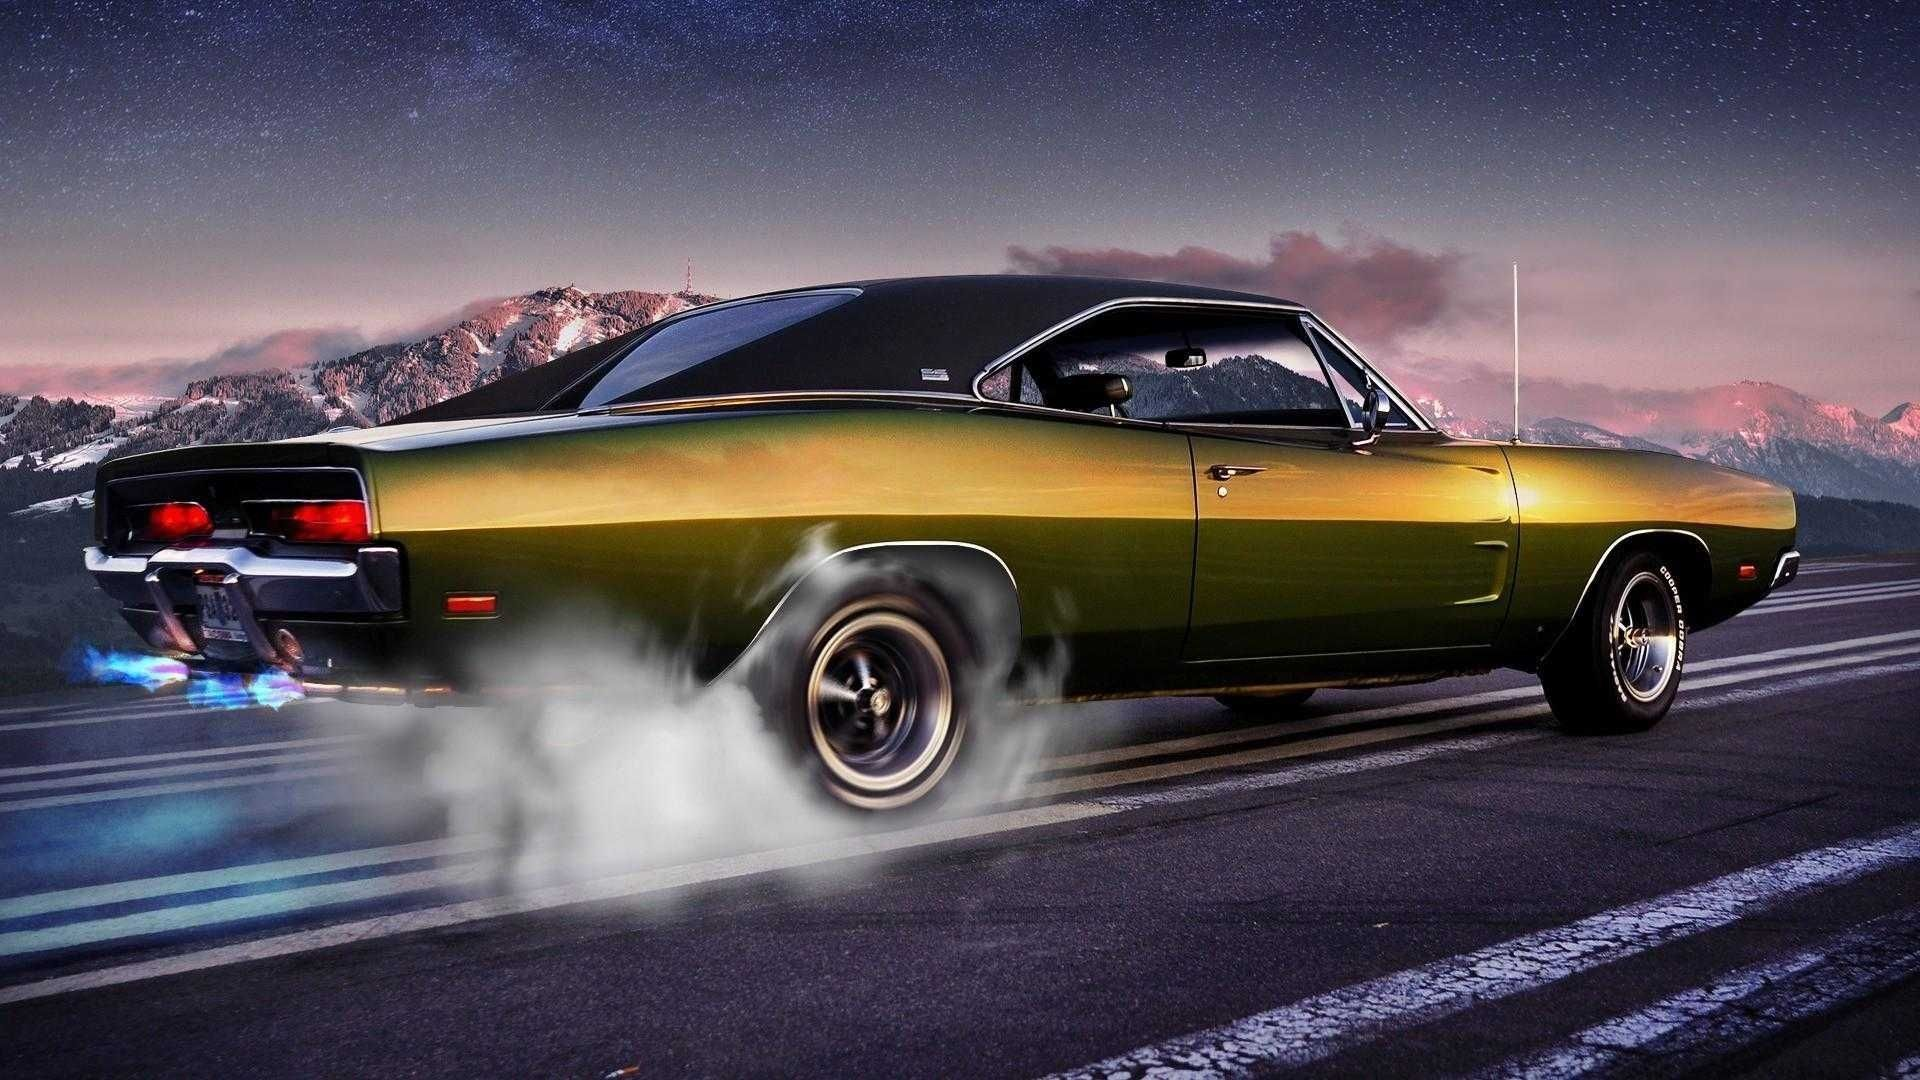 10 Top Classic Muscle Cars Wallpapers FULL HD 1920×1080